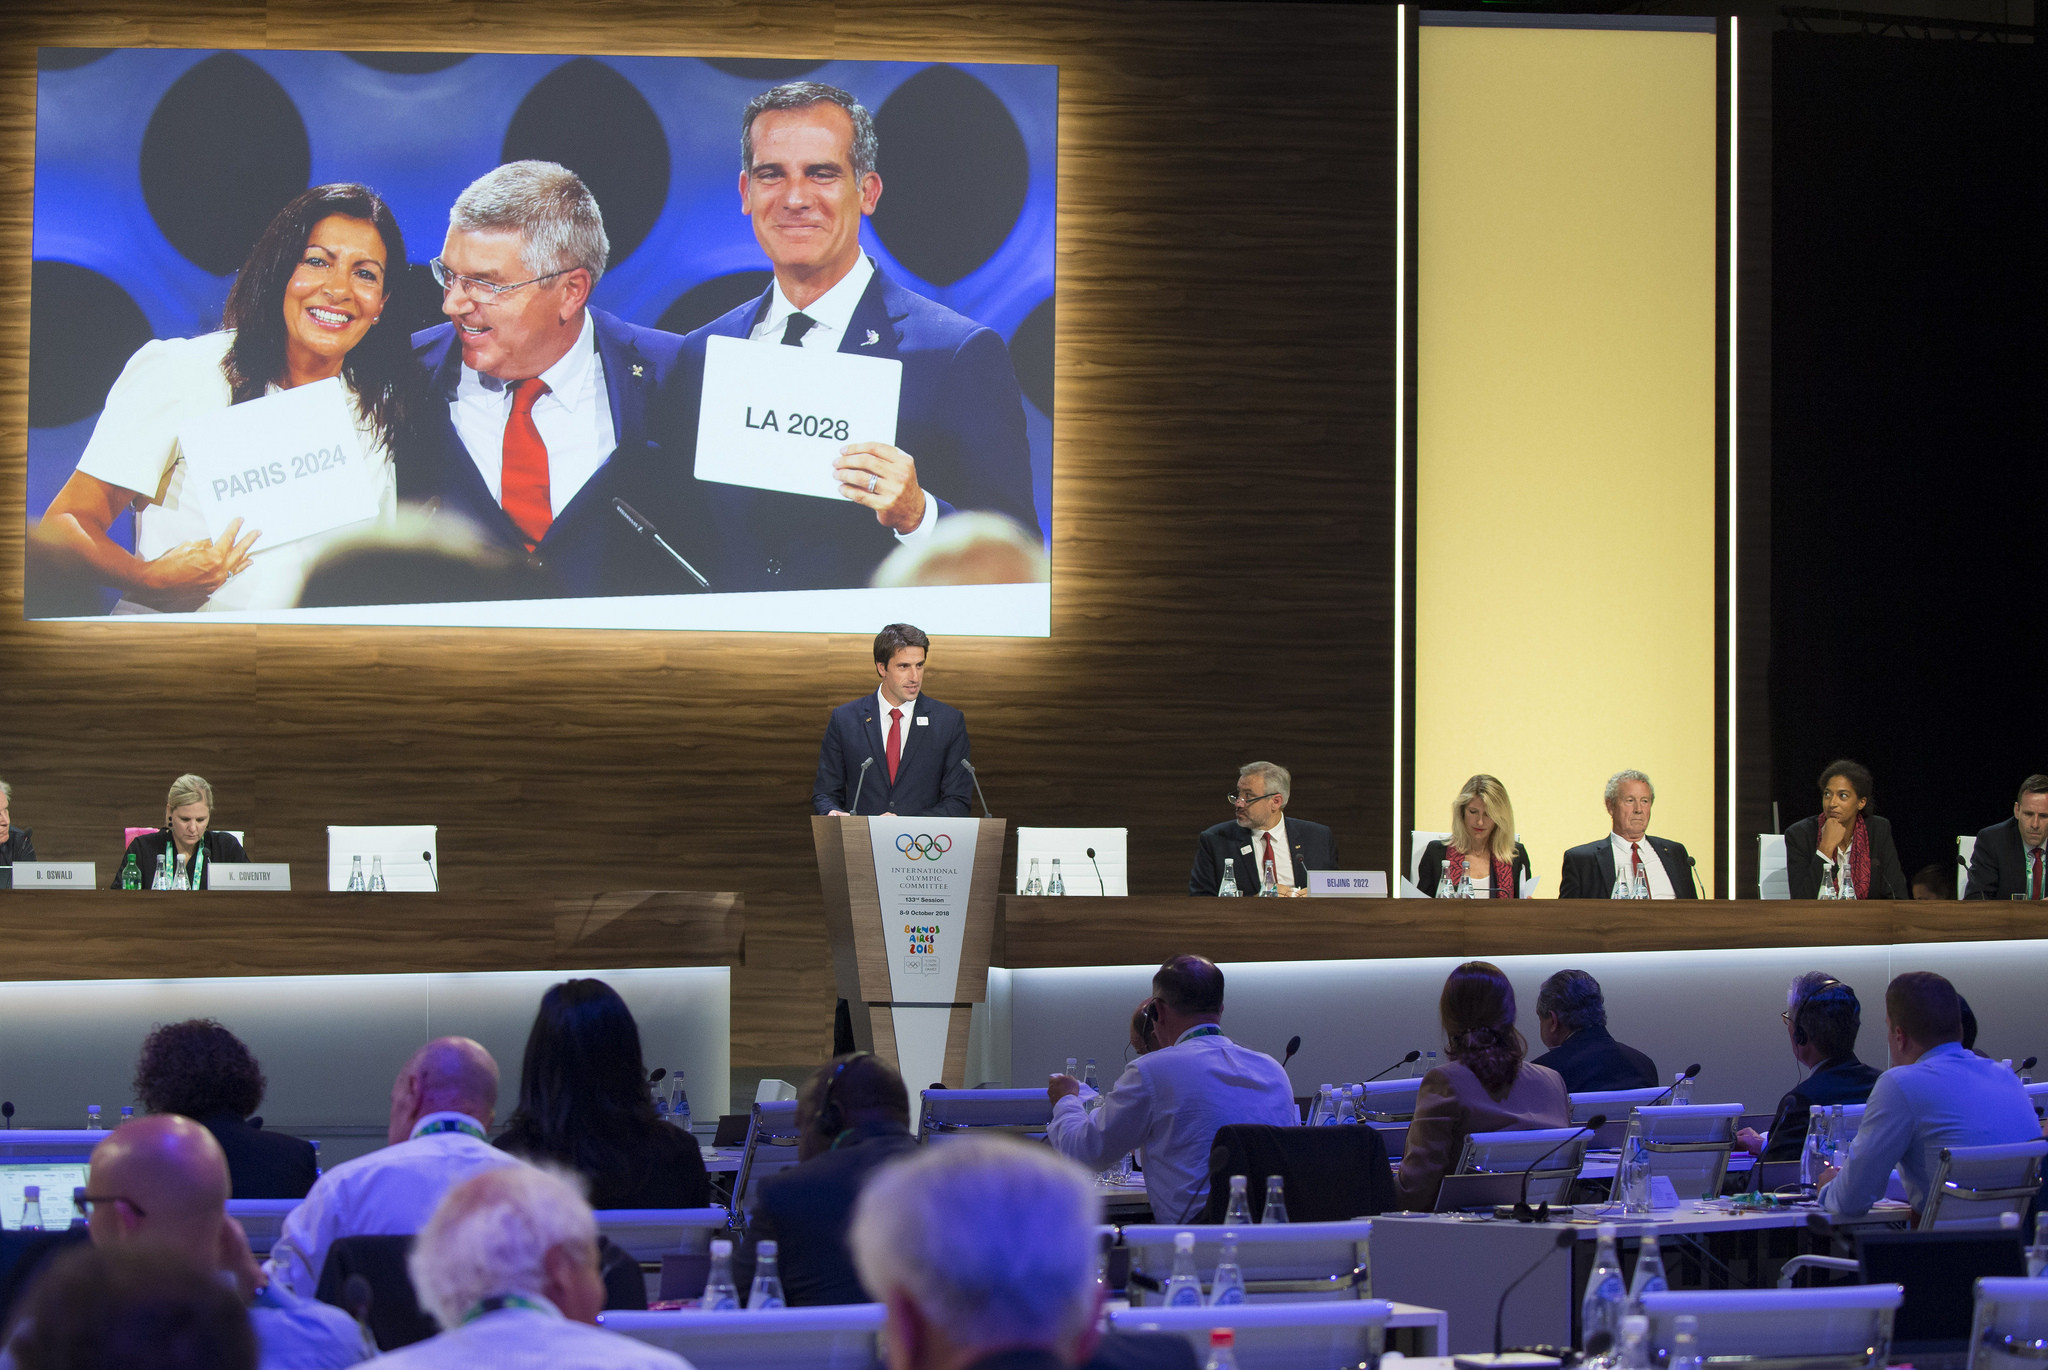 Estanguet claims Paris 2024 venue changes will ensure Olympic and Paralympic costs don't rise further